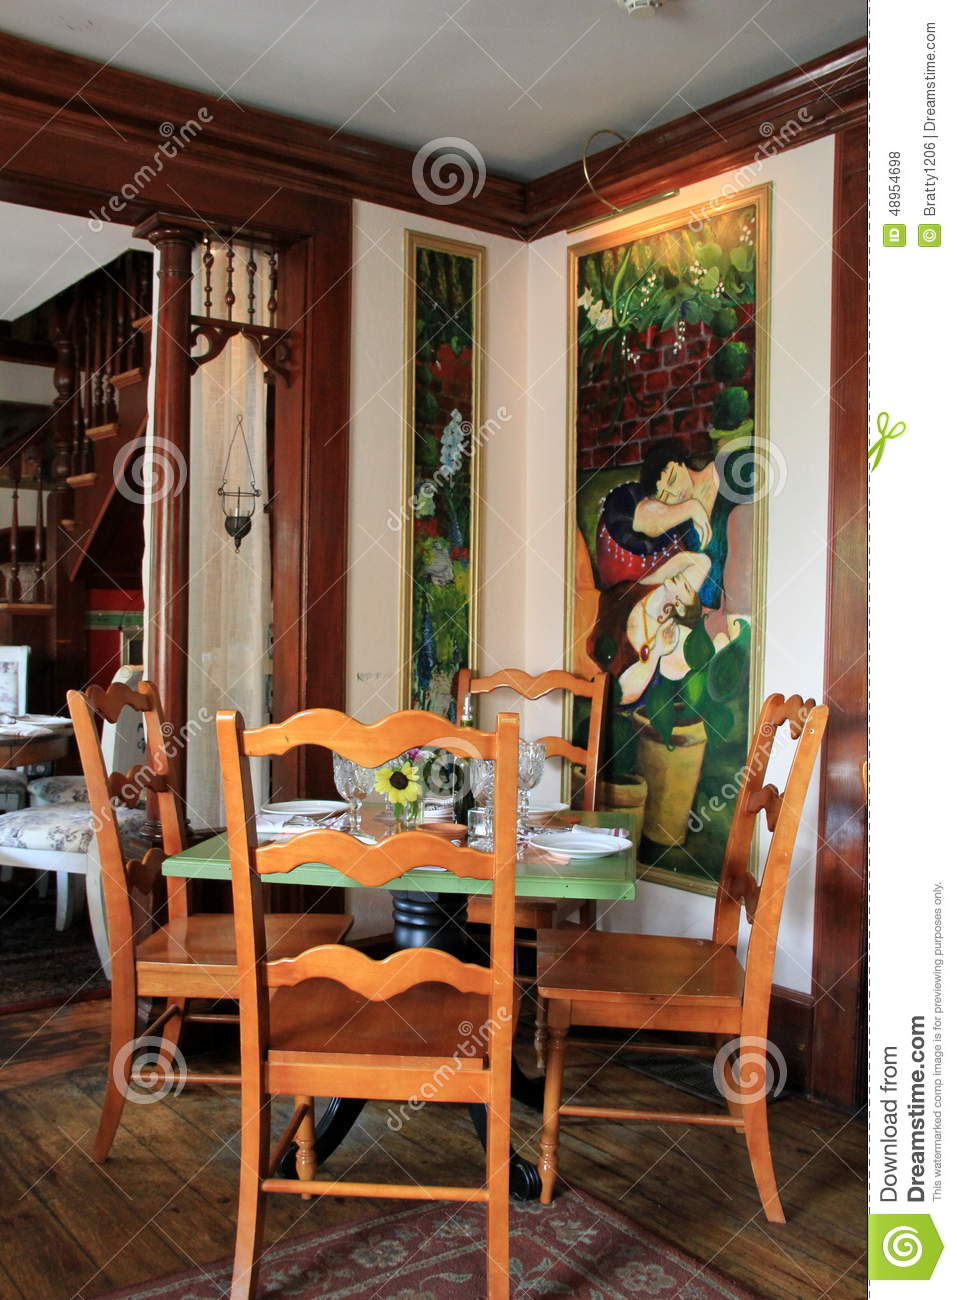 One Of The Many Dining Rooms Inside Famous Mouzon House Restaurant,Saratoga  Springs,New